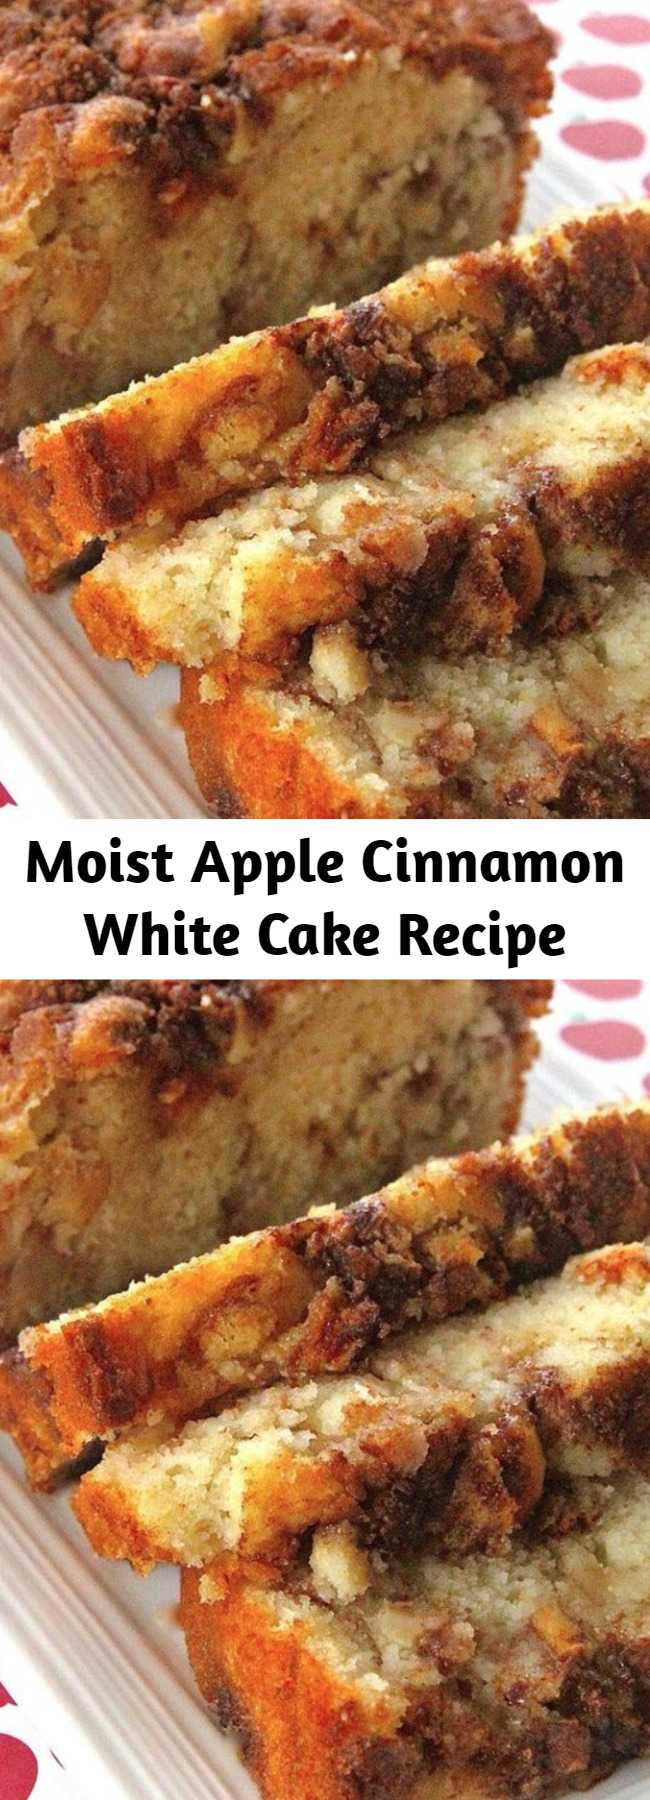 Moist Apple Cinnamon White Cake Recipe - A buttery white cake that comes together in minutes but tastes like you spent all day making it. Adding apples and cinnamon with brown sugar in layers makes this cake into an autumn delight. A scoop of ice cream is especially good with this cake.